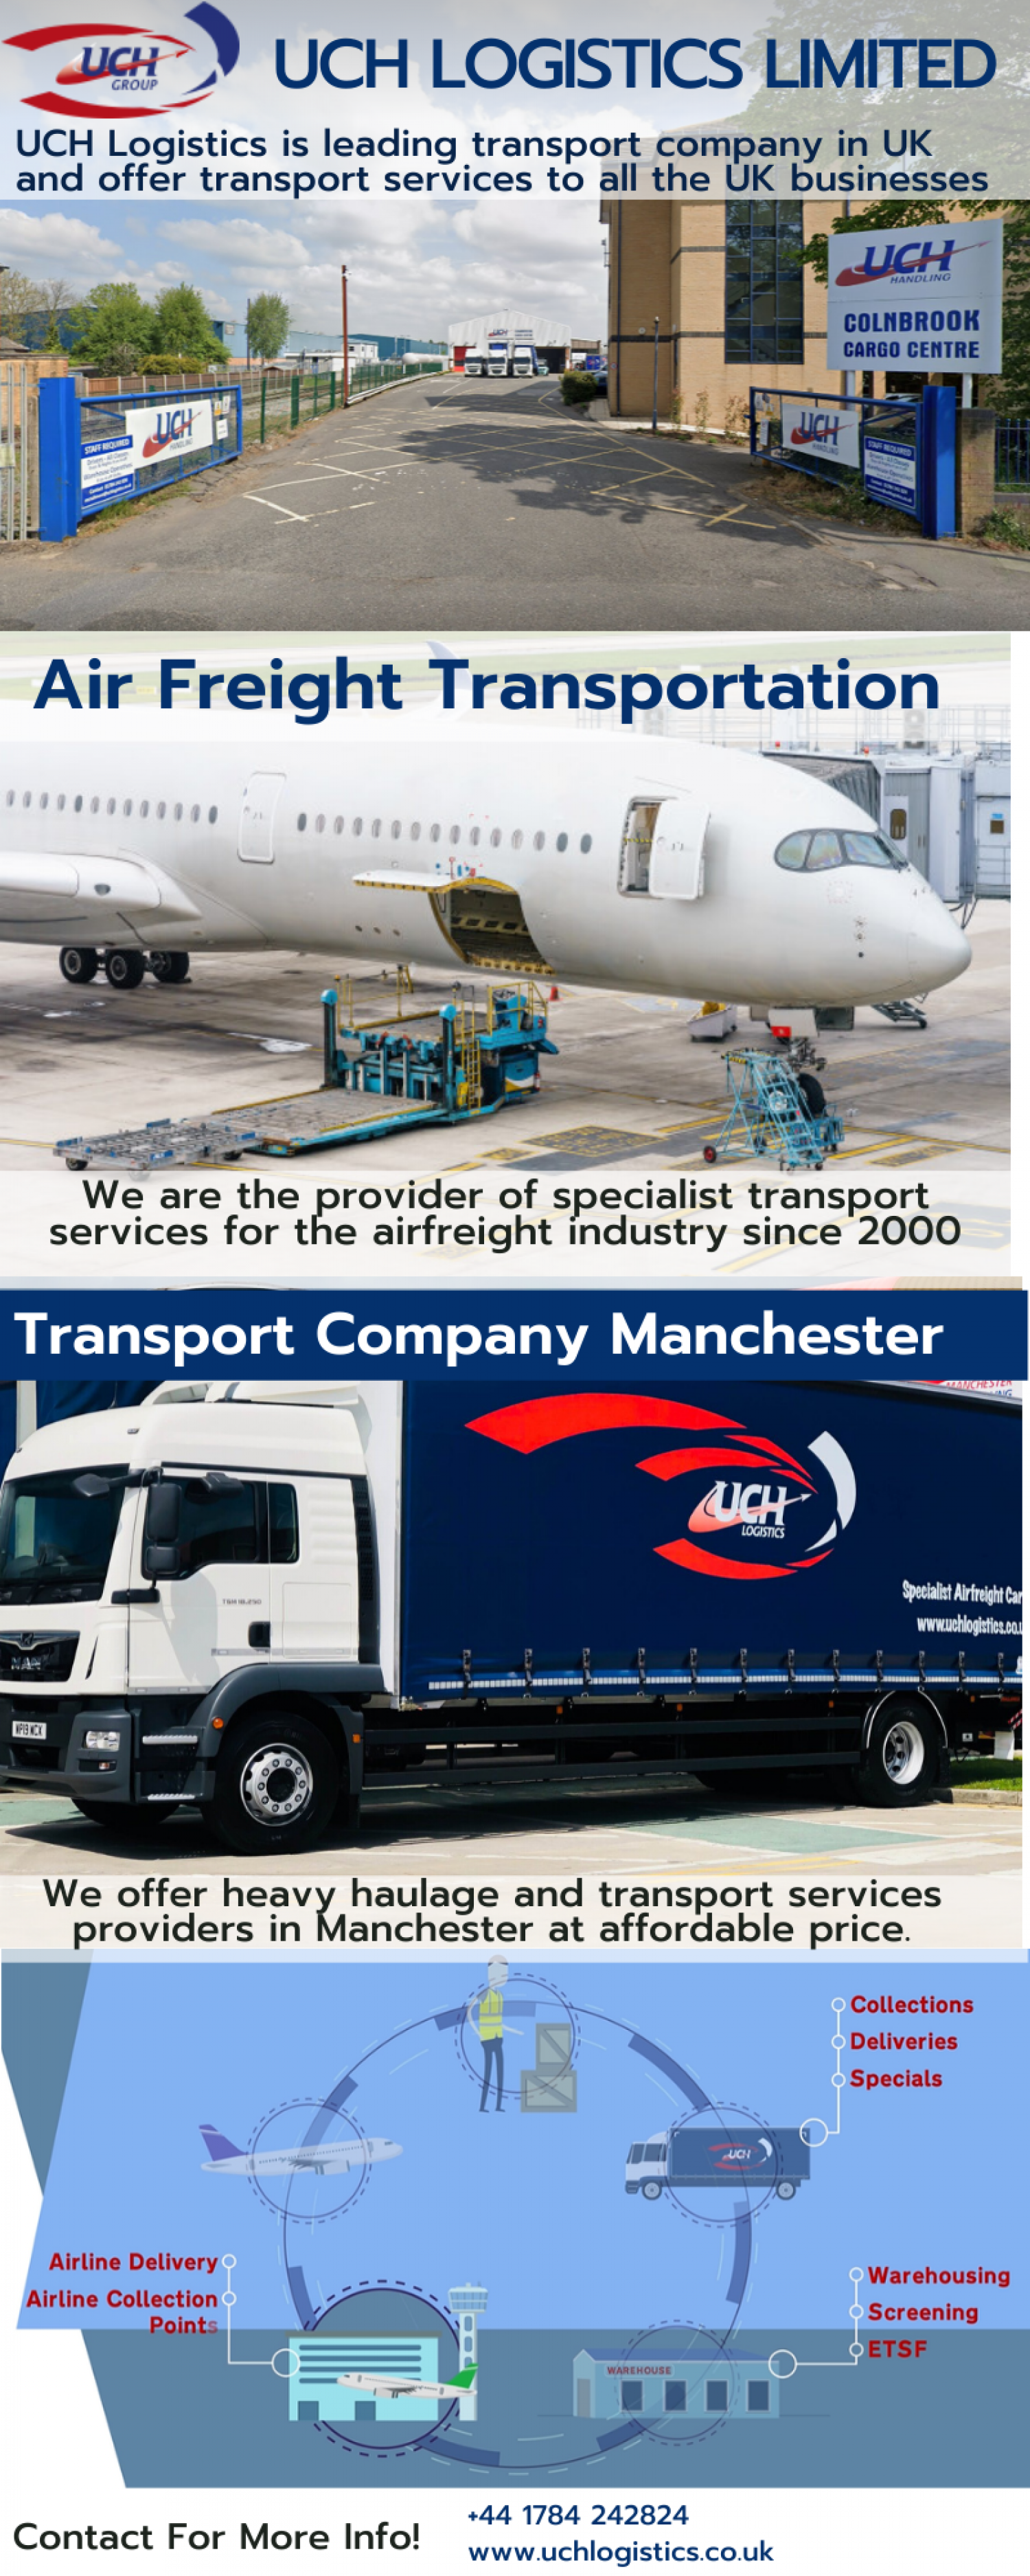 Leading Transport Company in The UK- UCH Logistics Limited Infographic